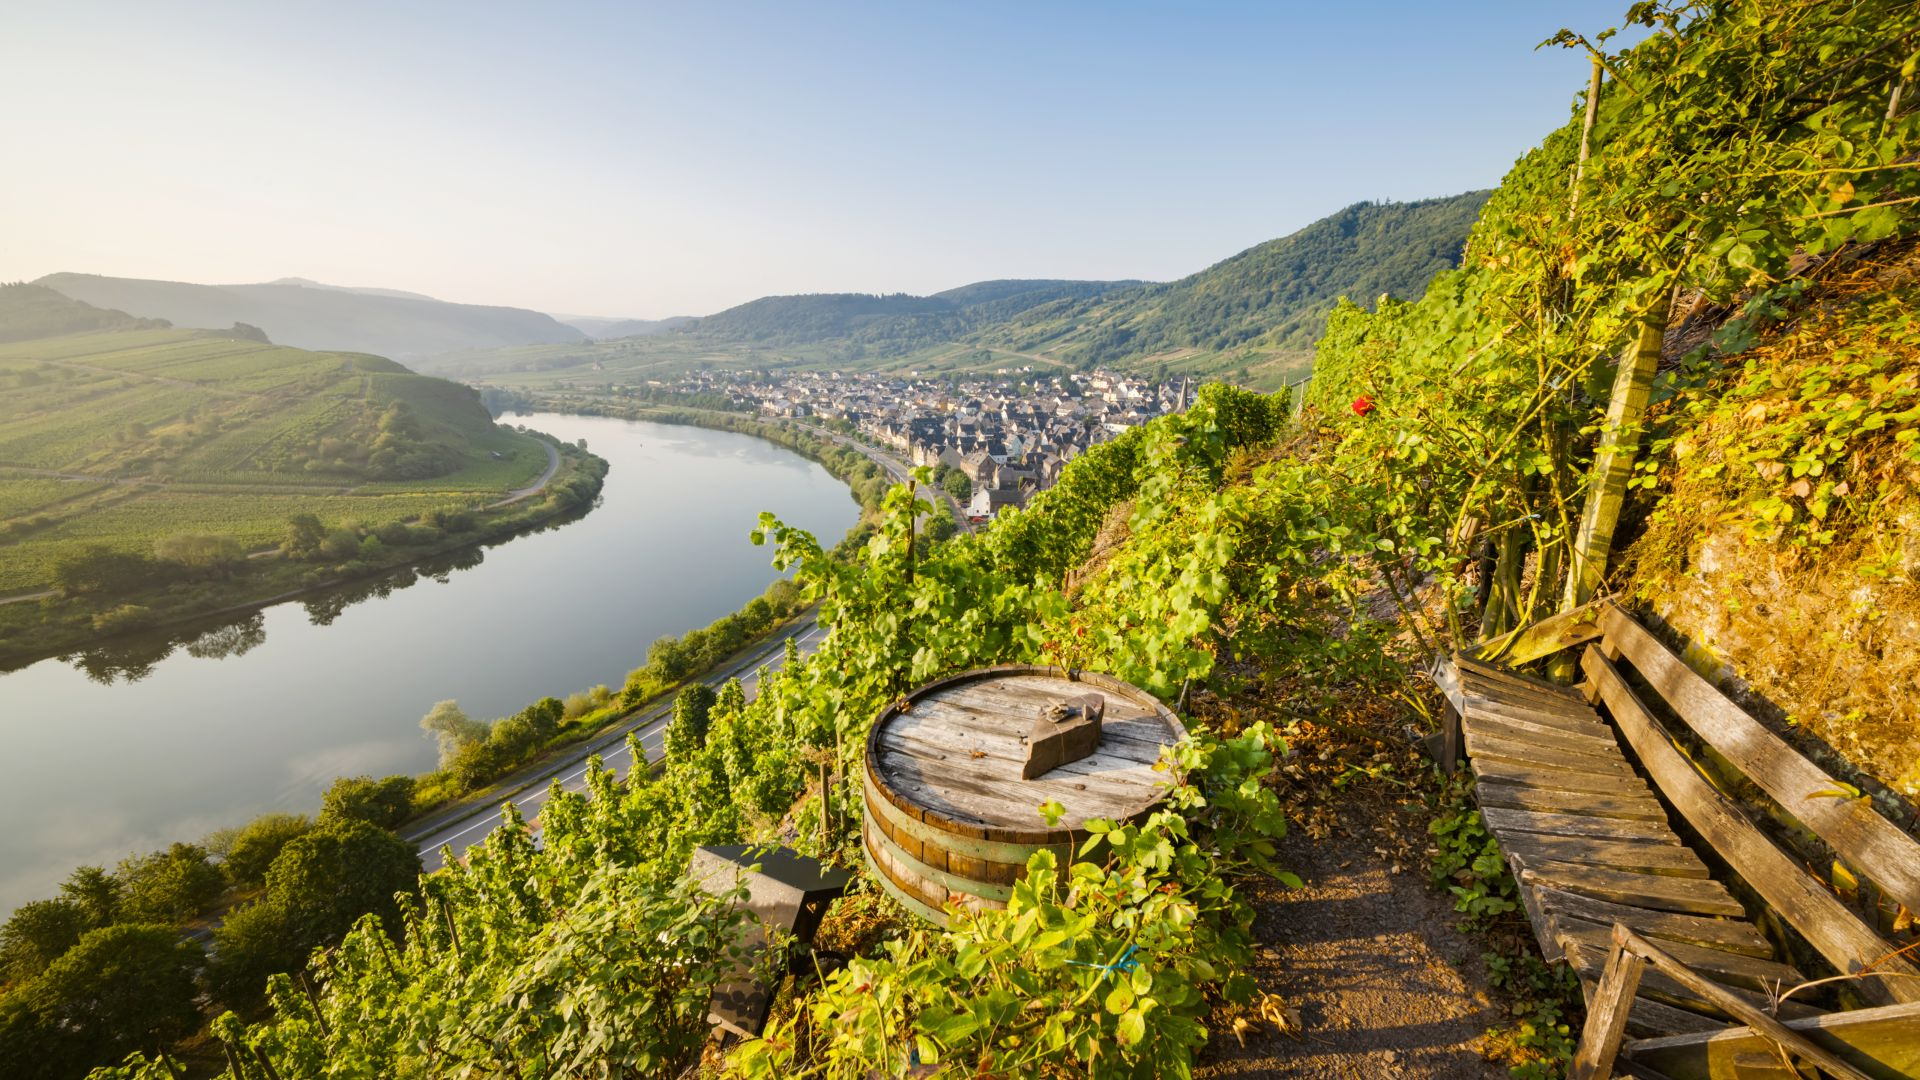 Bremm:The Calmont, Europe's steepest vineyard, view over the Moselle at dusk